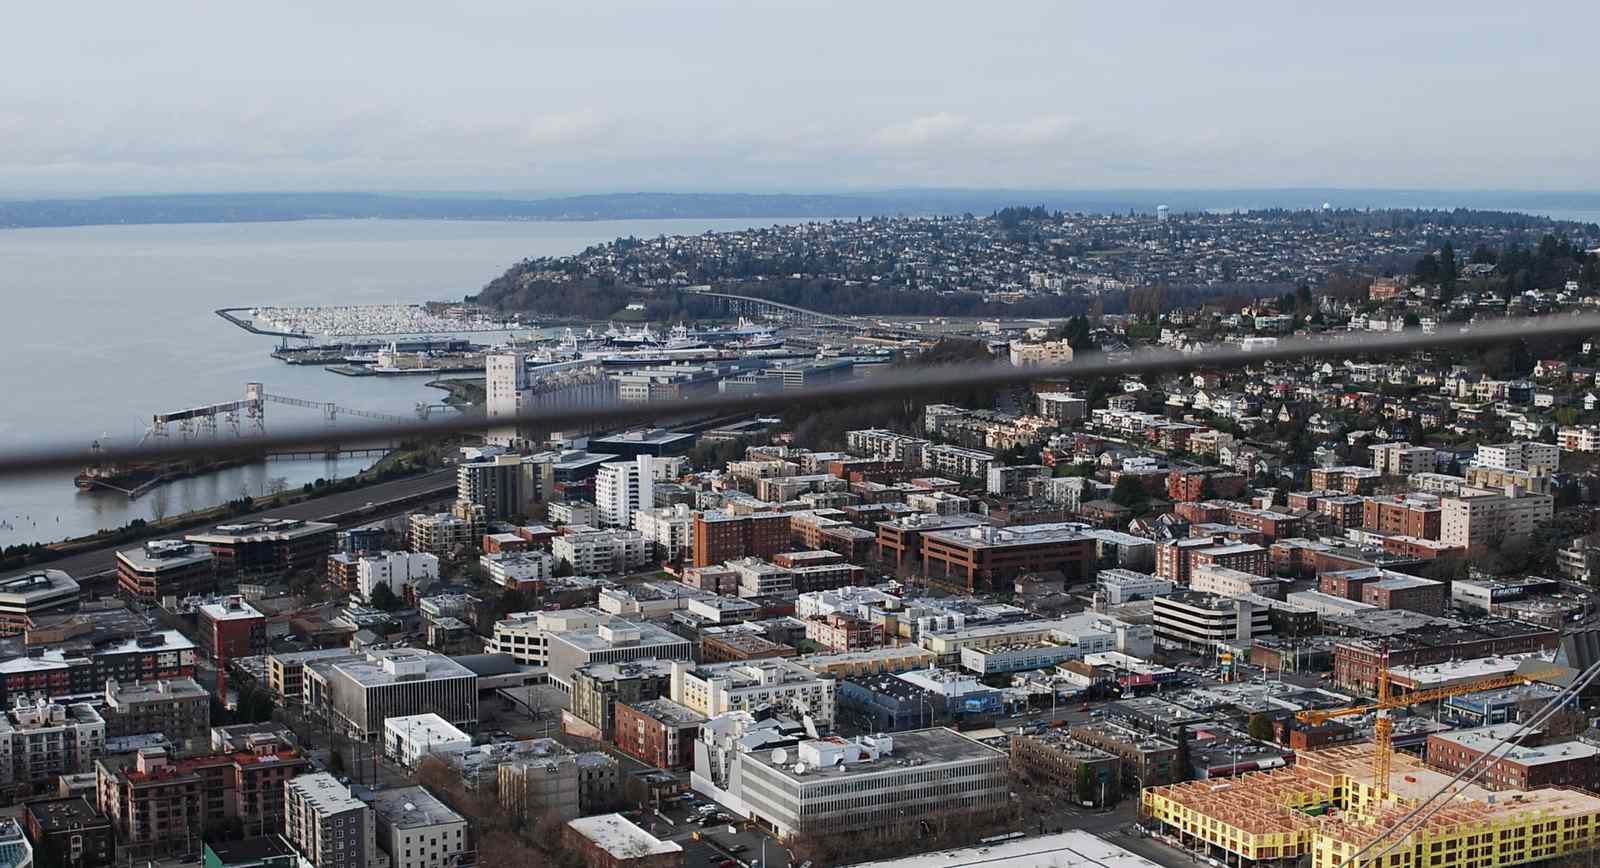 From the Space Needle: Seattle Center, Lower Queen Anne